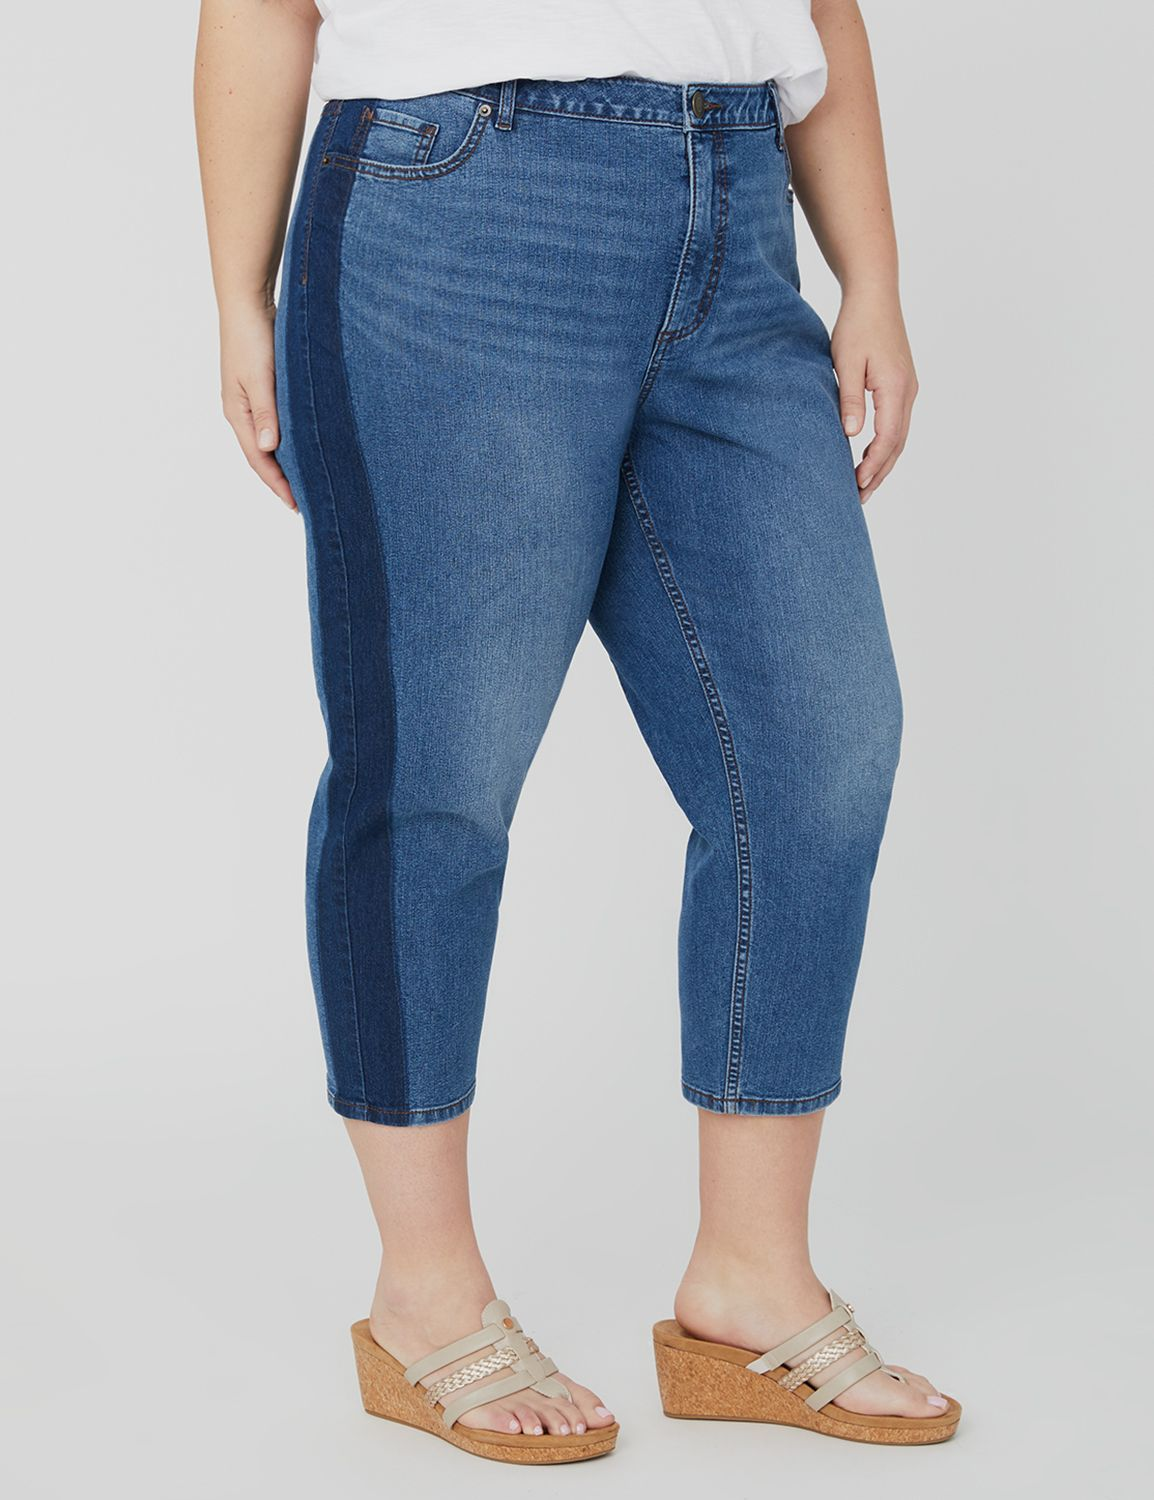 Jean Capri with Dark-Wash Stripe 1088046 2-TONE DENIM WASH ON SIDE S MP-300099563